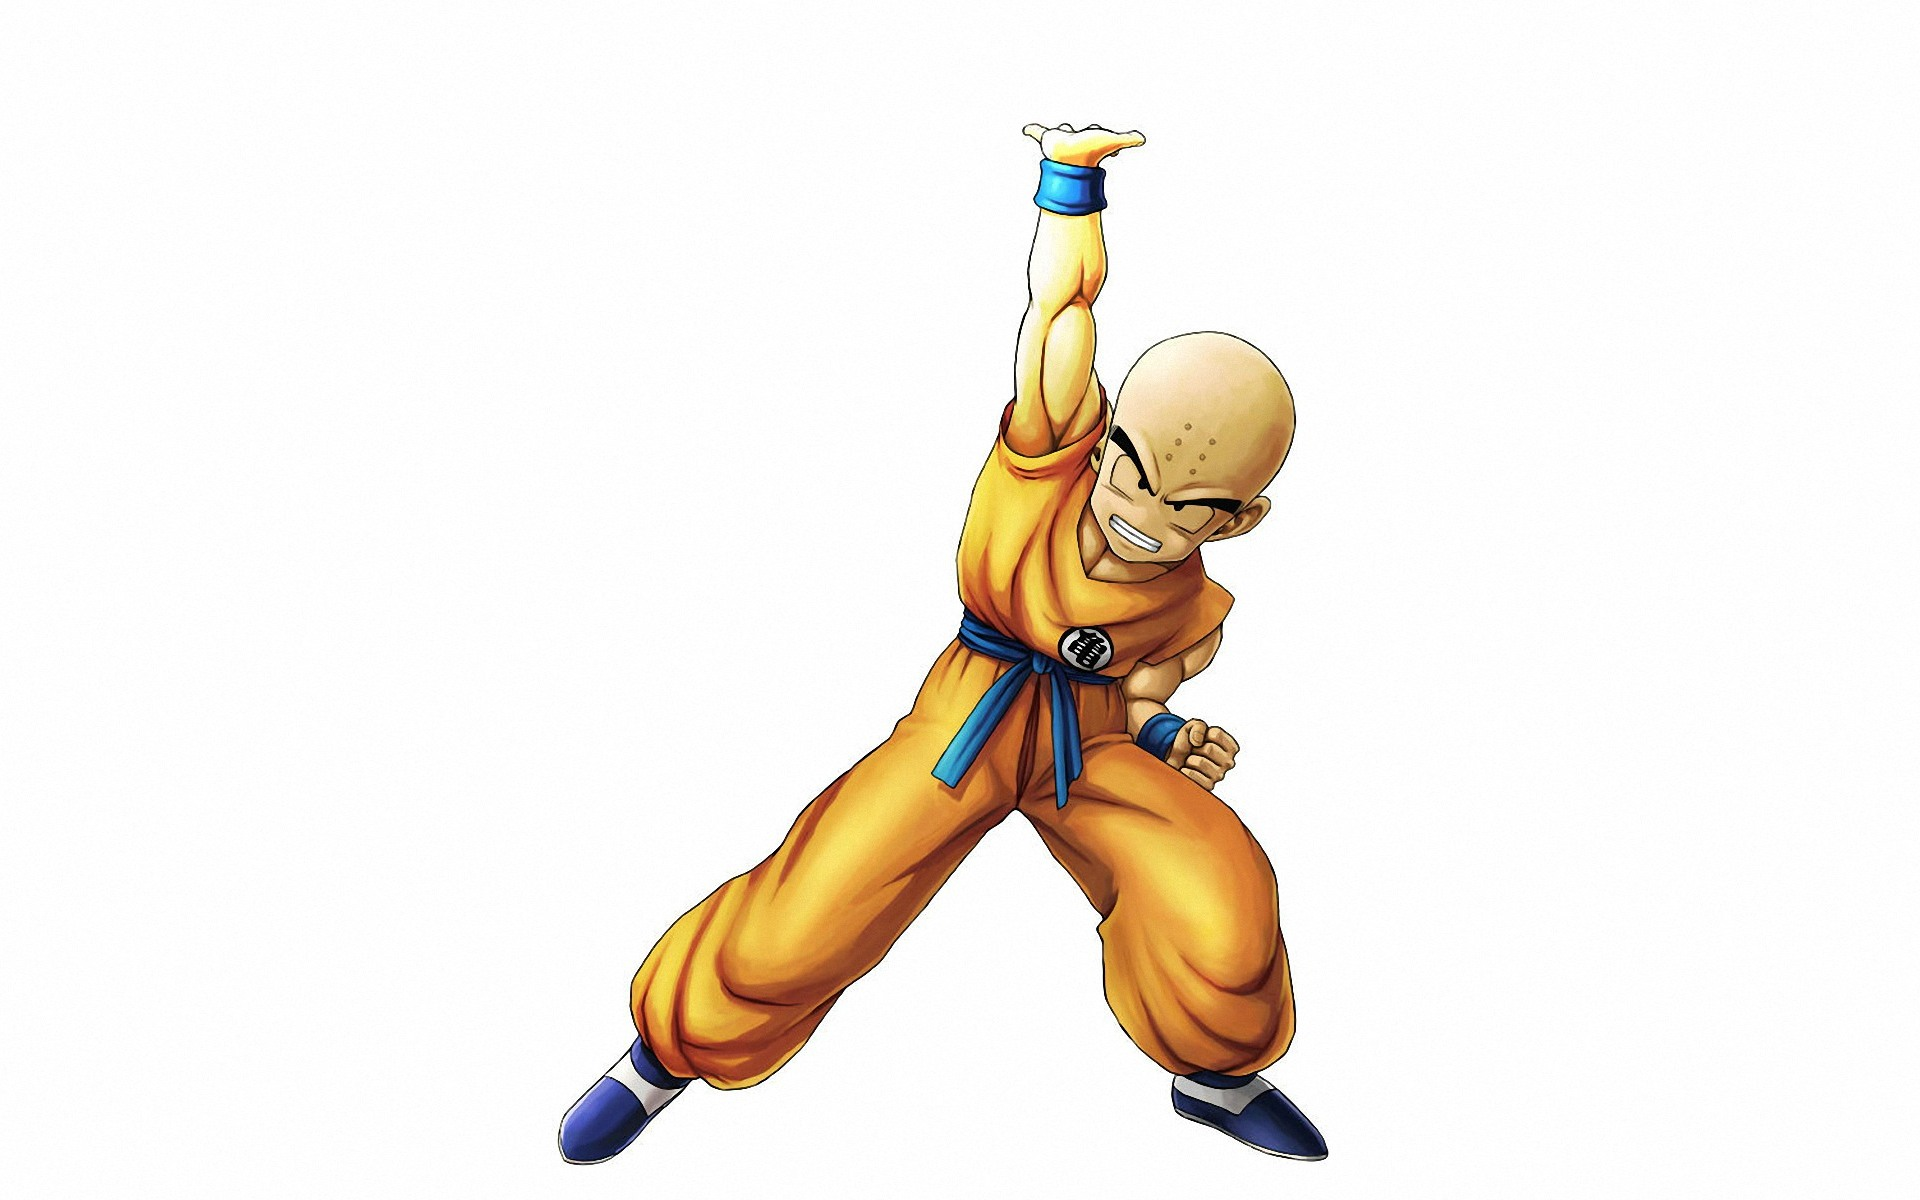 Ultimate Tenkaichi Krillin 1920x1200 Wallpapers 1920x1200 1920x1200